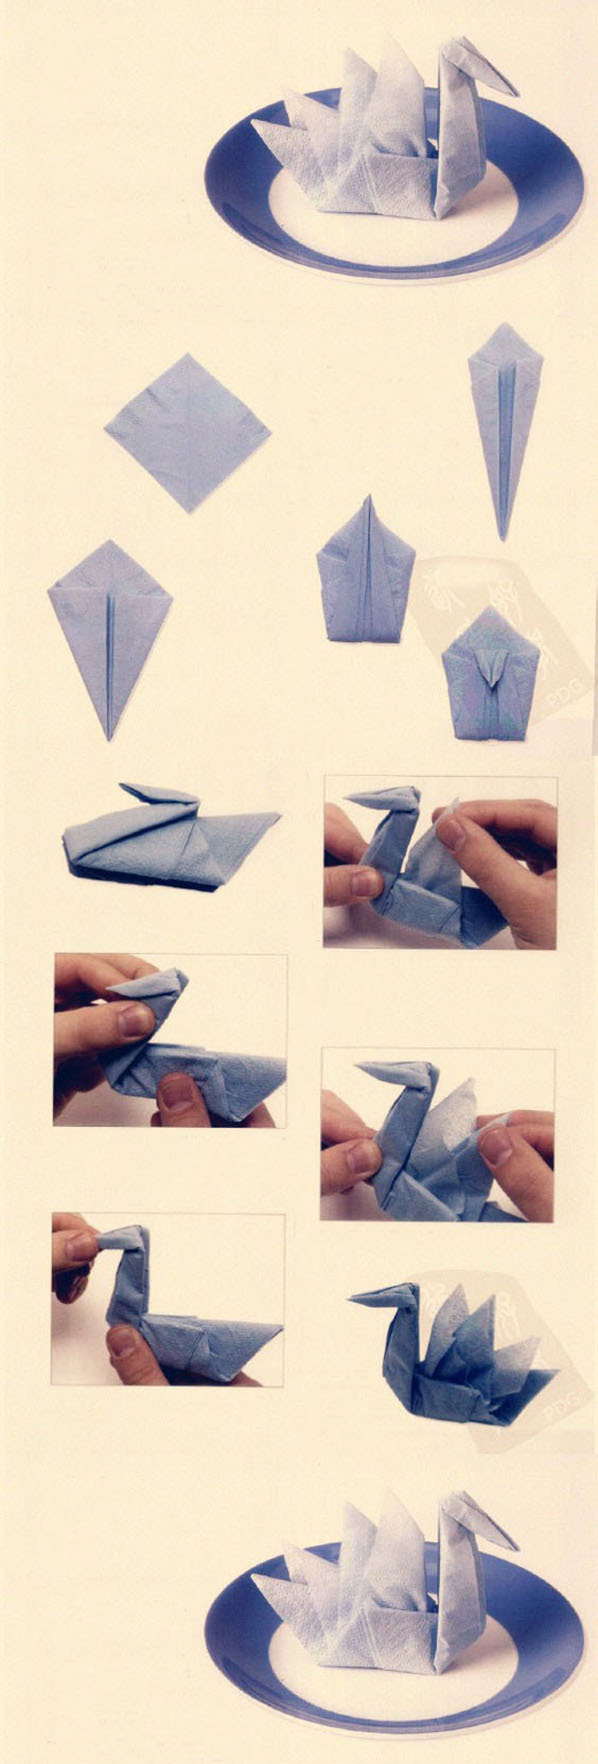 AD-Napkin-Folding-Techniques-That-Will-Transform-Your-Dinner-Table-04